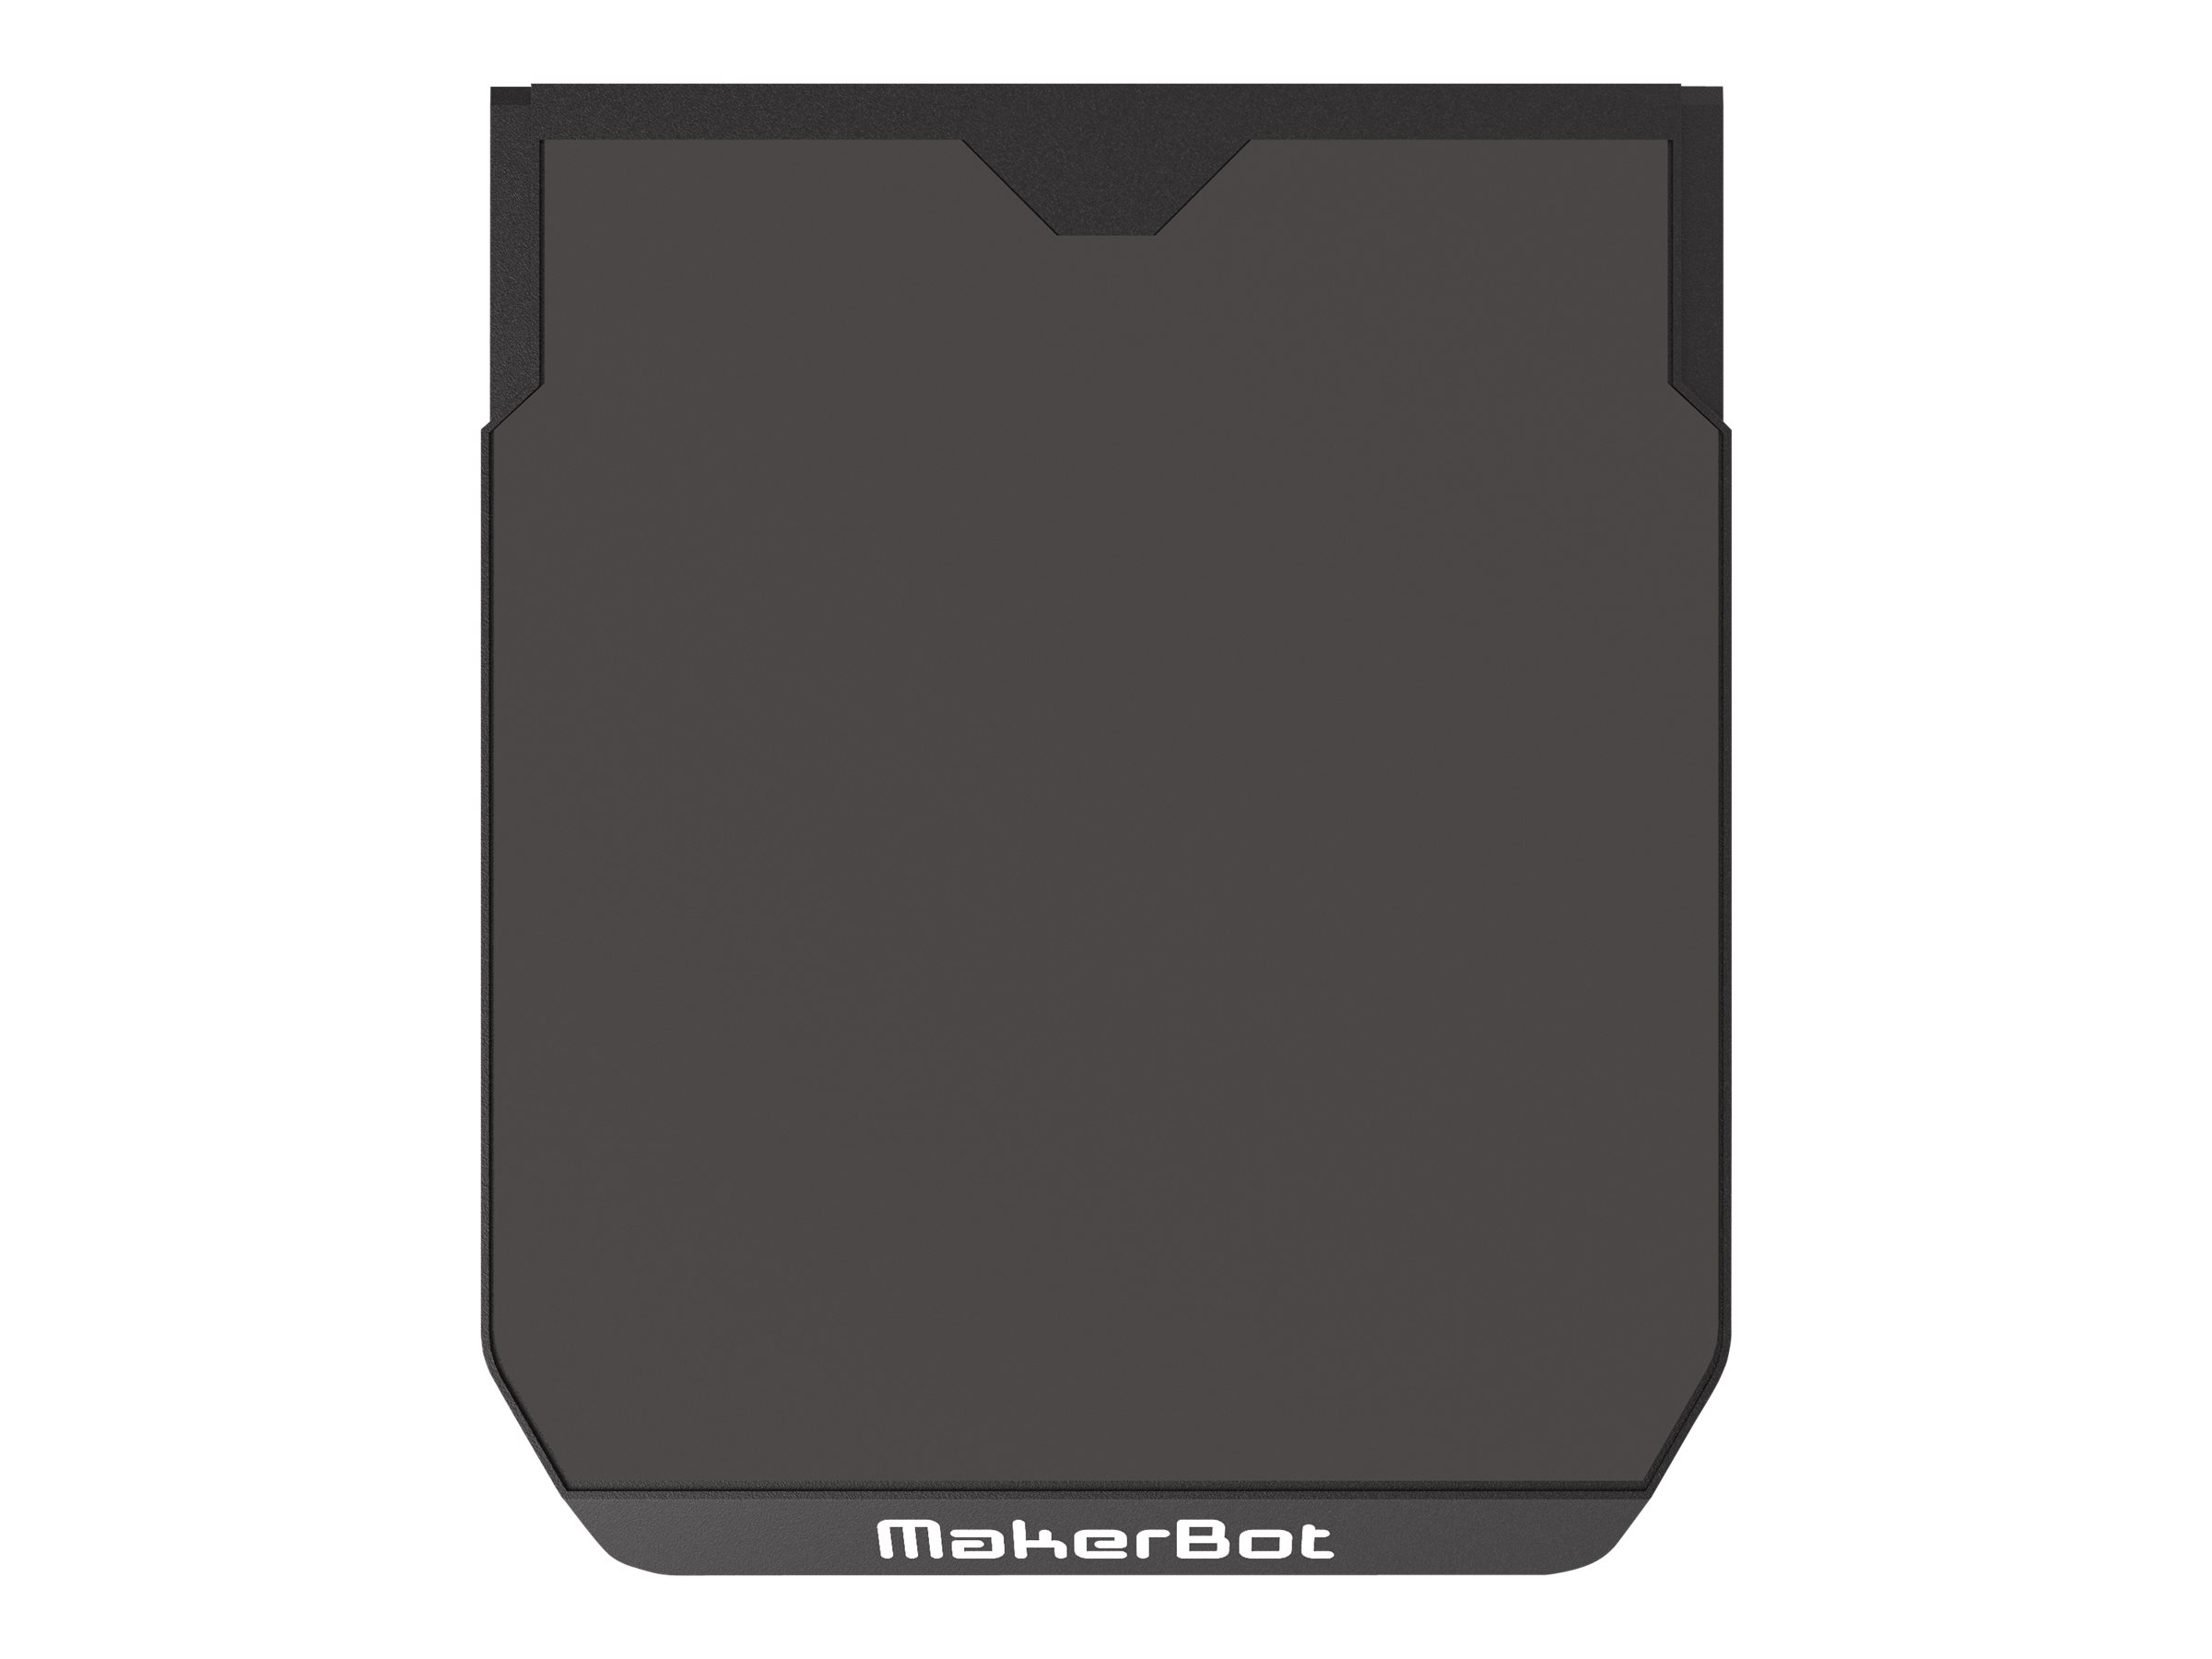 MakerBot build plate